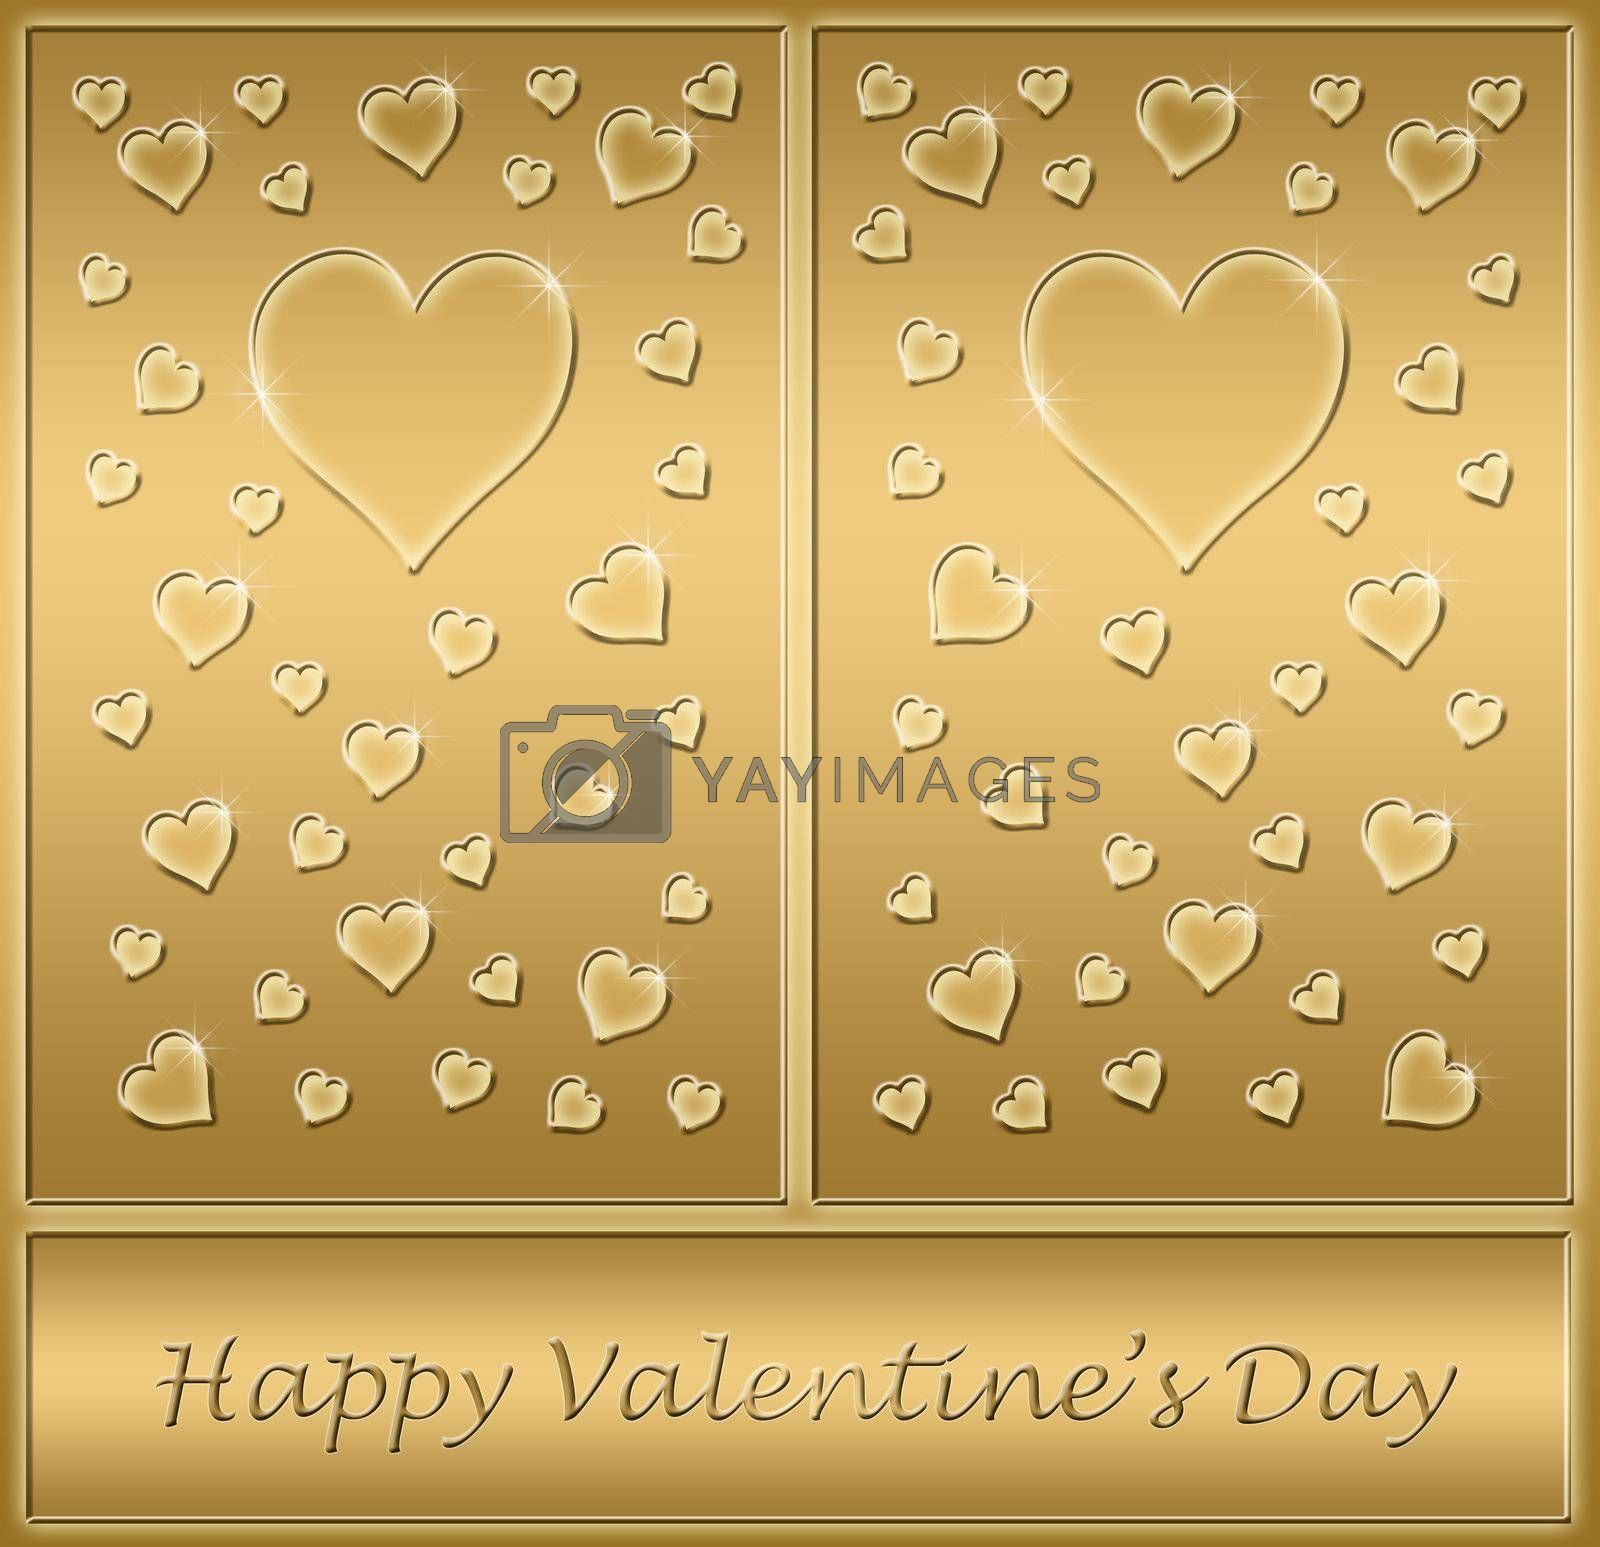 a beautiful valentines card with love hearts